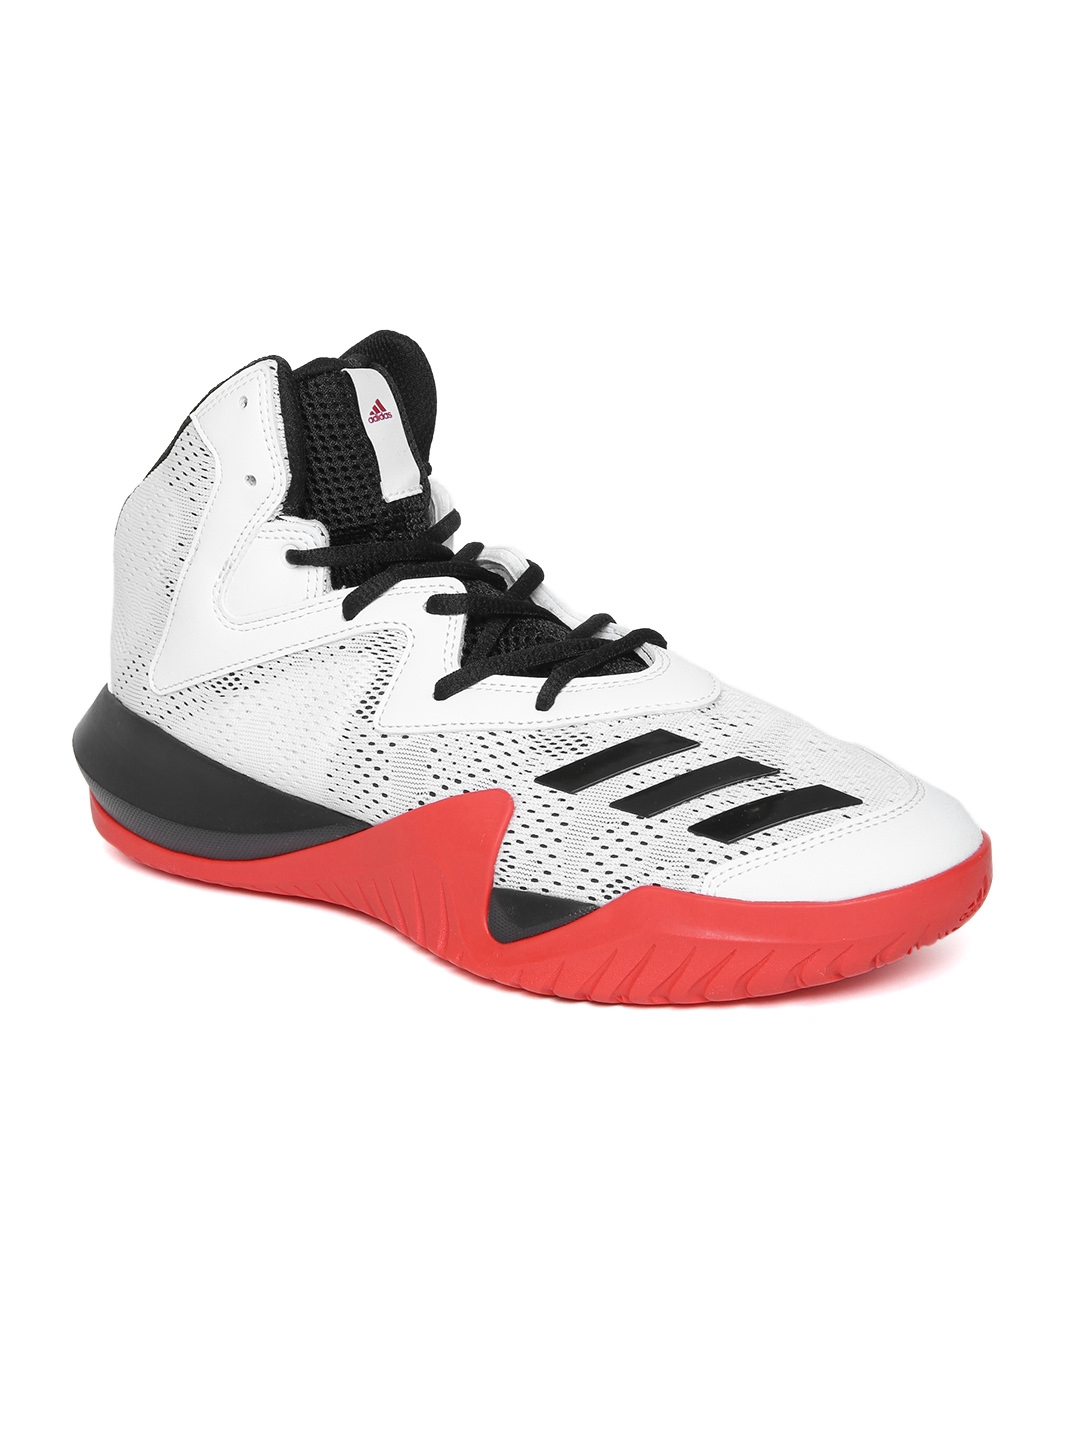 870eafccb57 Buy ADIDAS Men White Crazy Team 2017 Mid Top Basketball Shoes ...